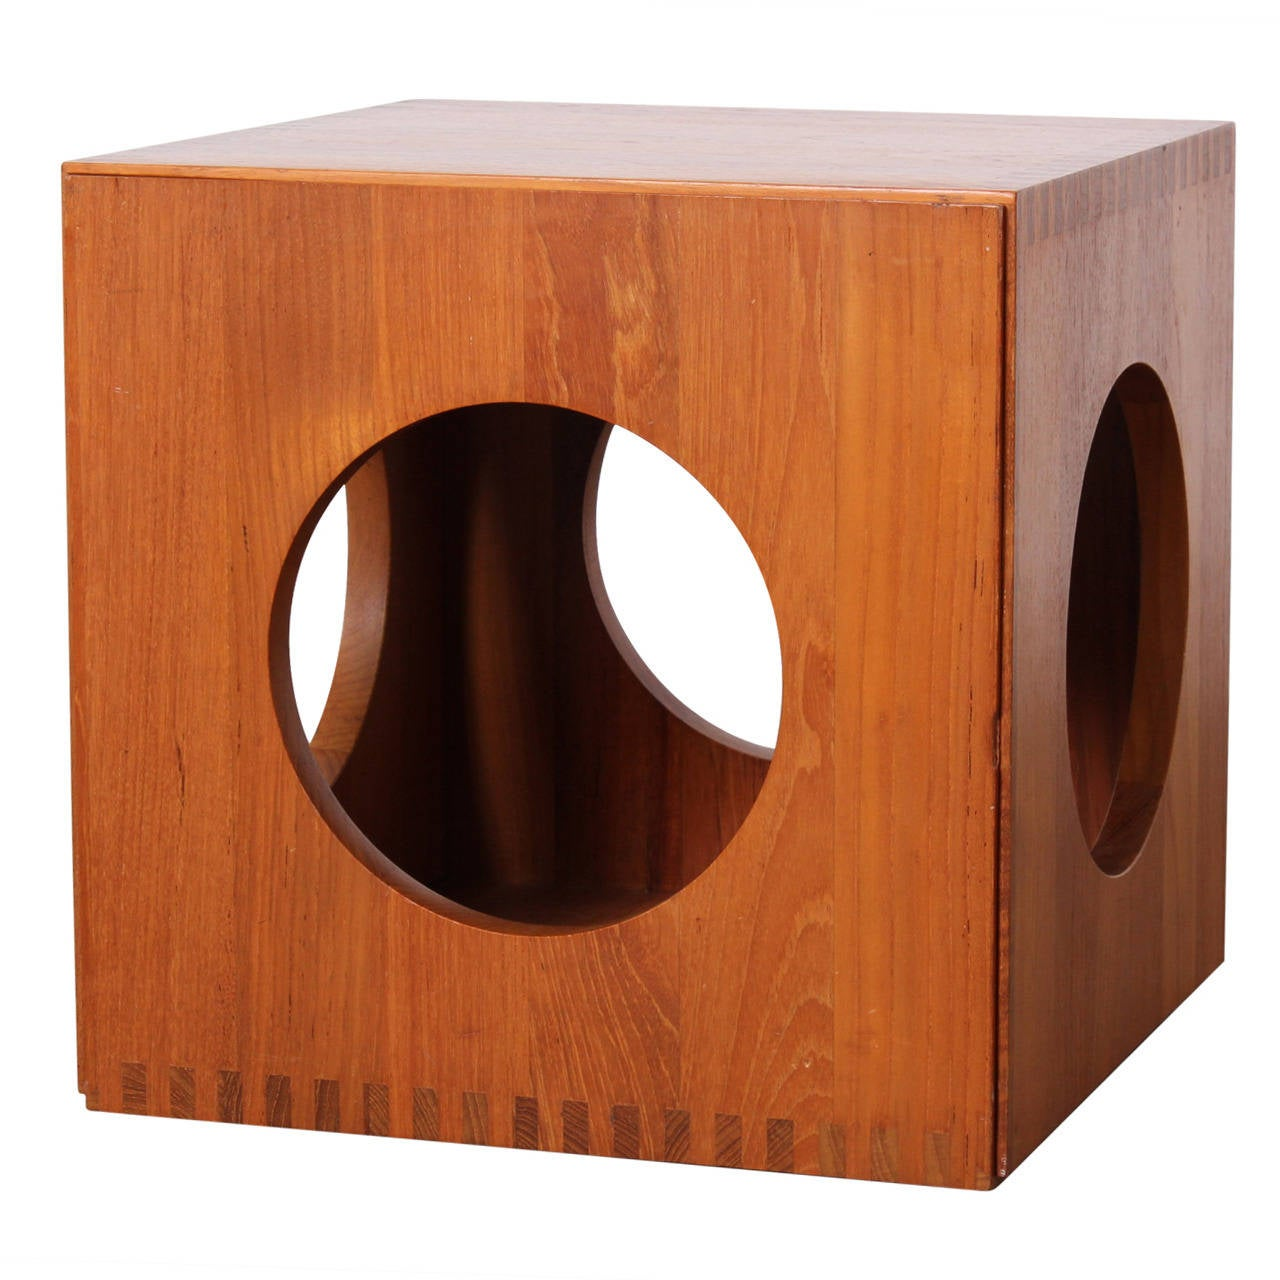 Cube Nesting Tables By Peter Hvidt For Richard Nissen At 1stdibs. Full resolution‎  image, nominally Width 1280 Height 1280 pixels, image with #290E08.